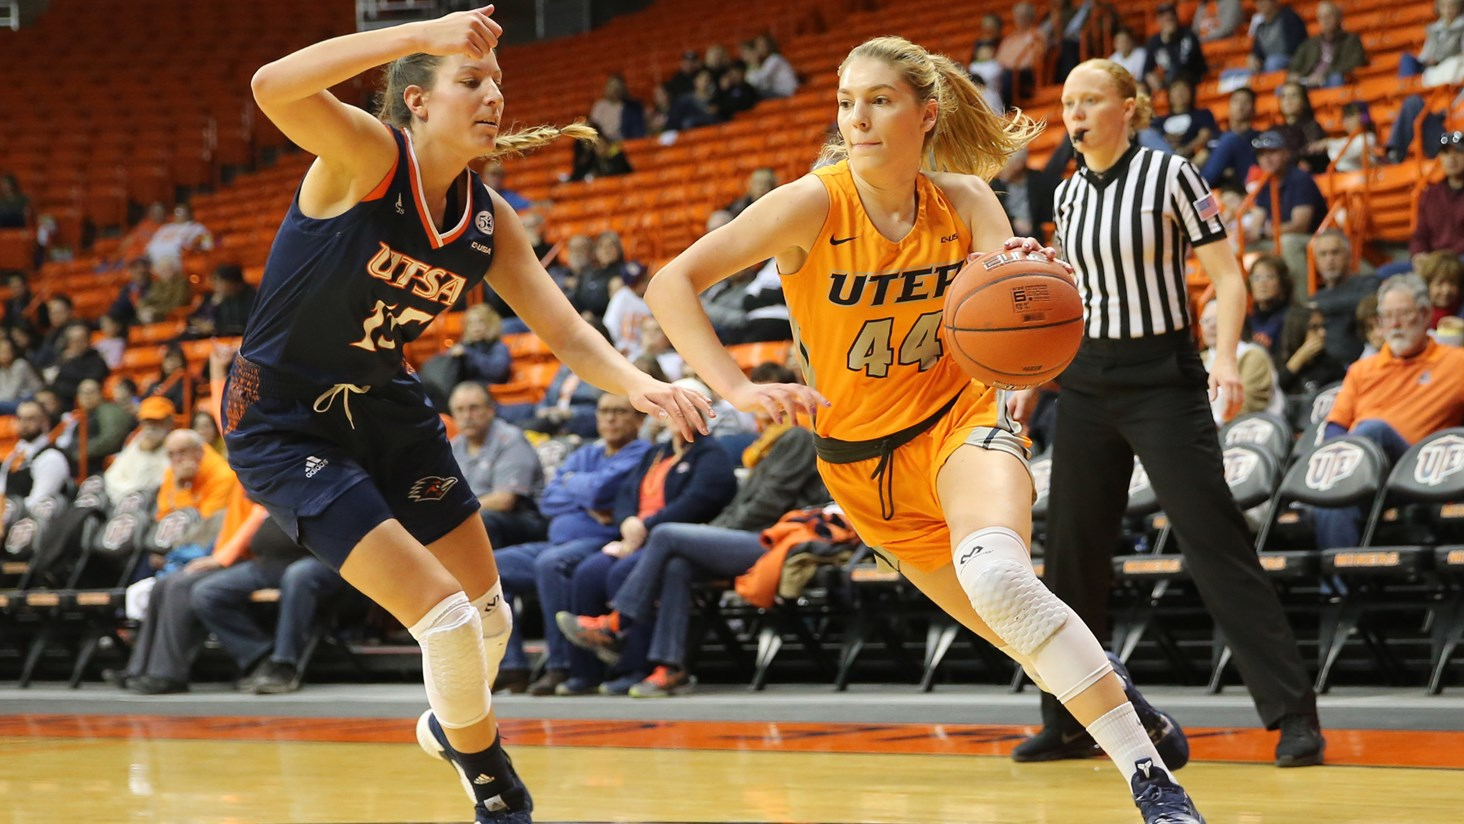 Utep Calendar.Utep Announces 2019 20 Women S Basketball Schedule The University